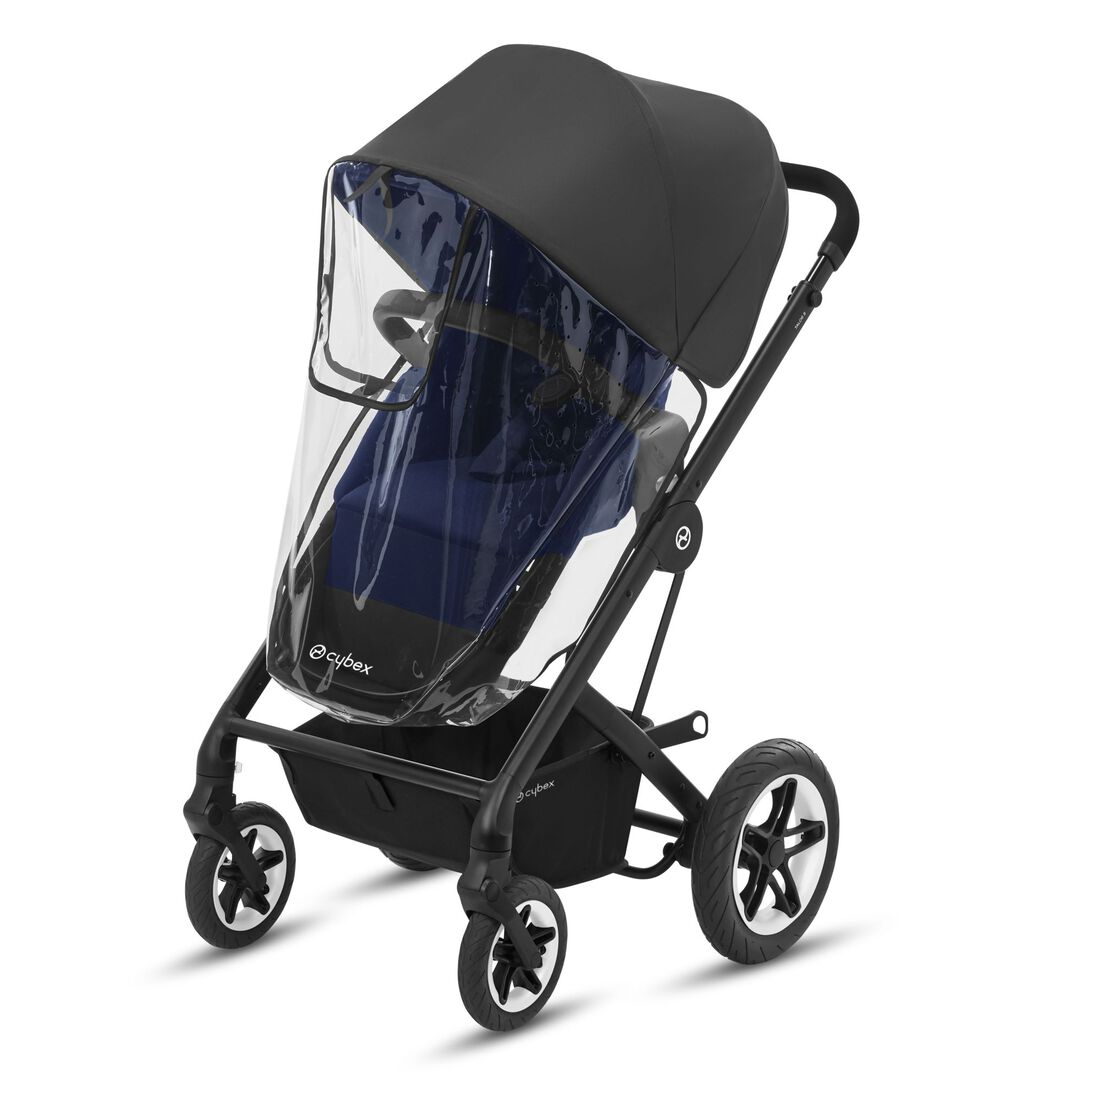 CYBEX Rain Cover Balios S 2-in-1/Talos S 2-in-1 - Transparent in Transparent large image number 2